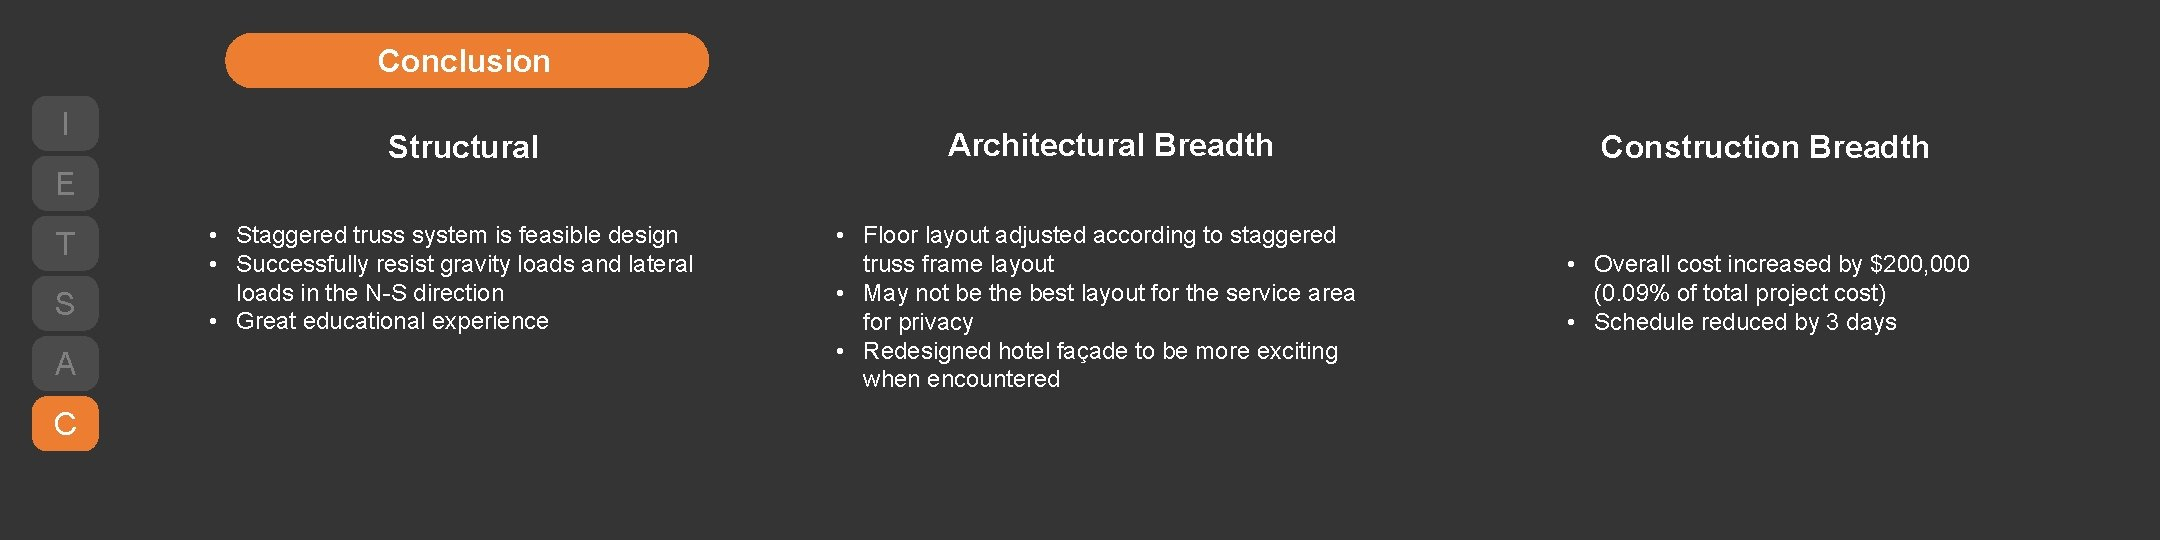 Conclusion I Structural Architectural Breadth Construction Breadth E T S A C • Staggered